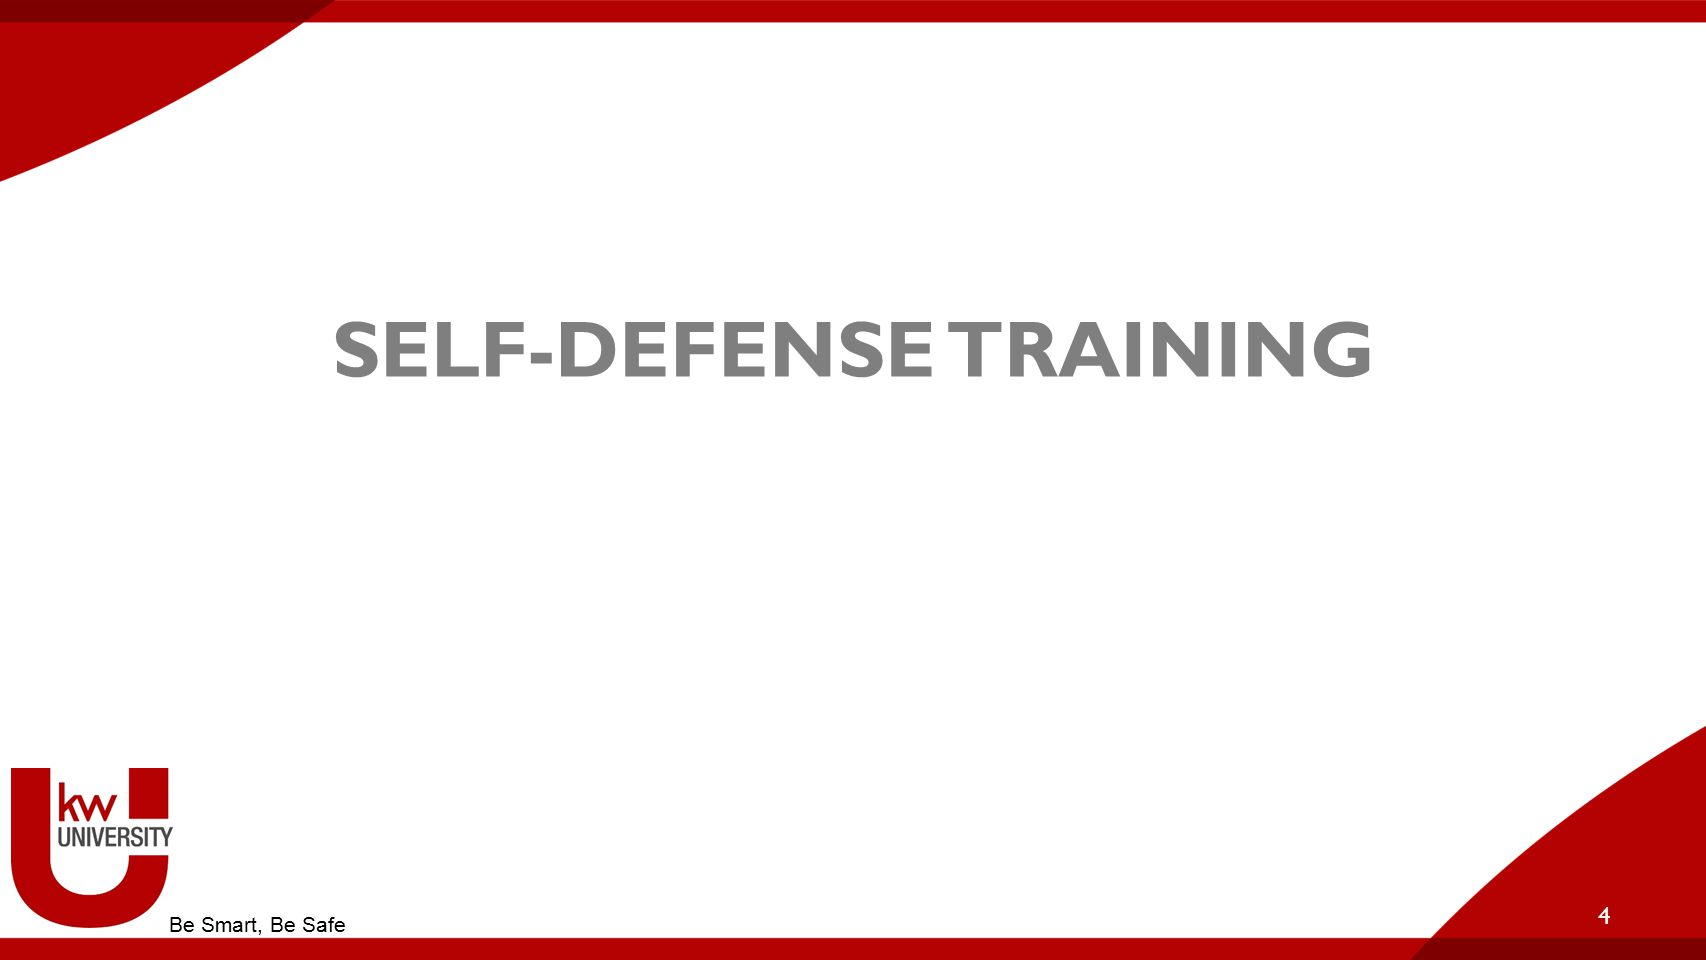 Self-Defense Self-defense training Are you prepared to defend yourself? 5 Be Smart, Be Safe